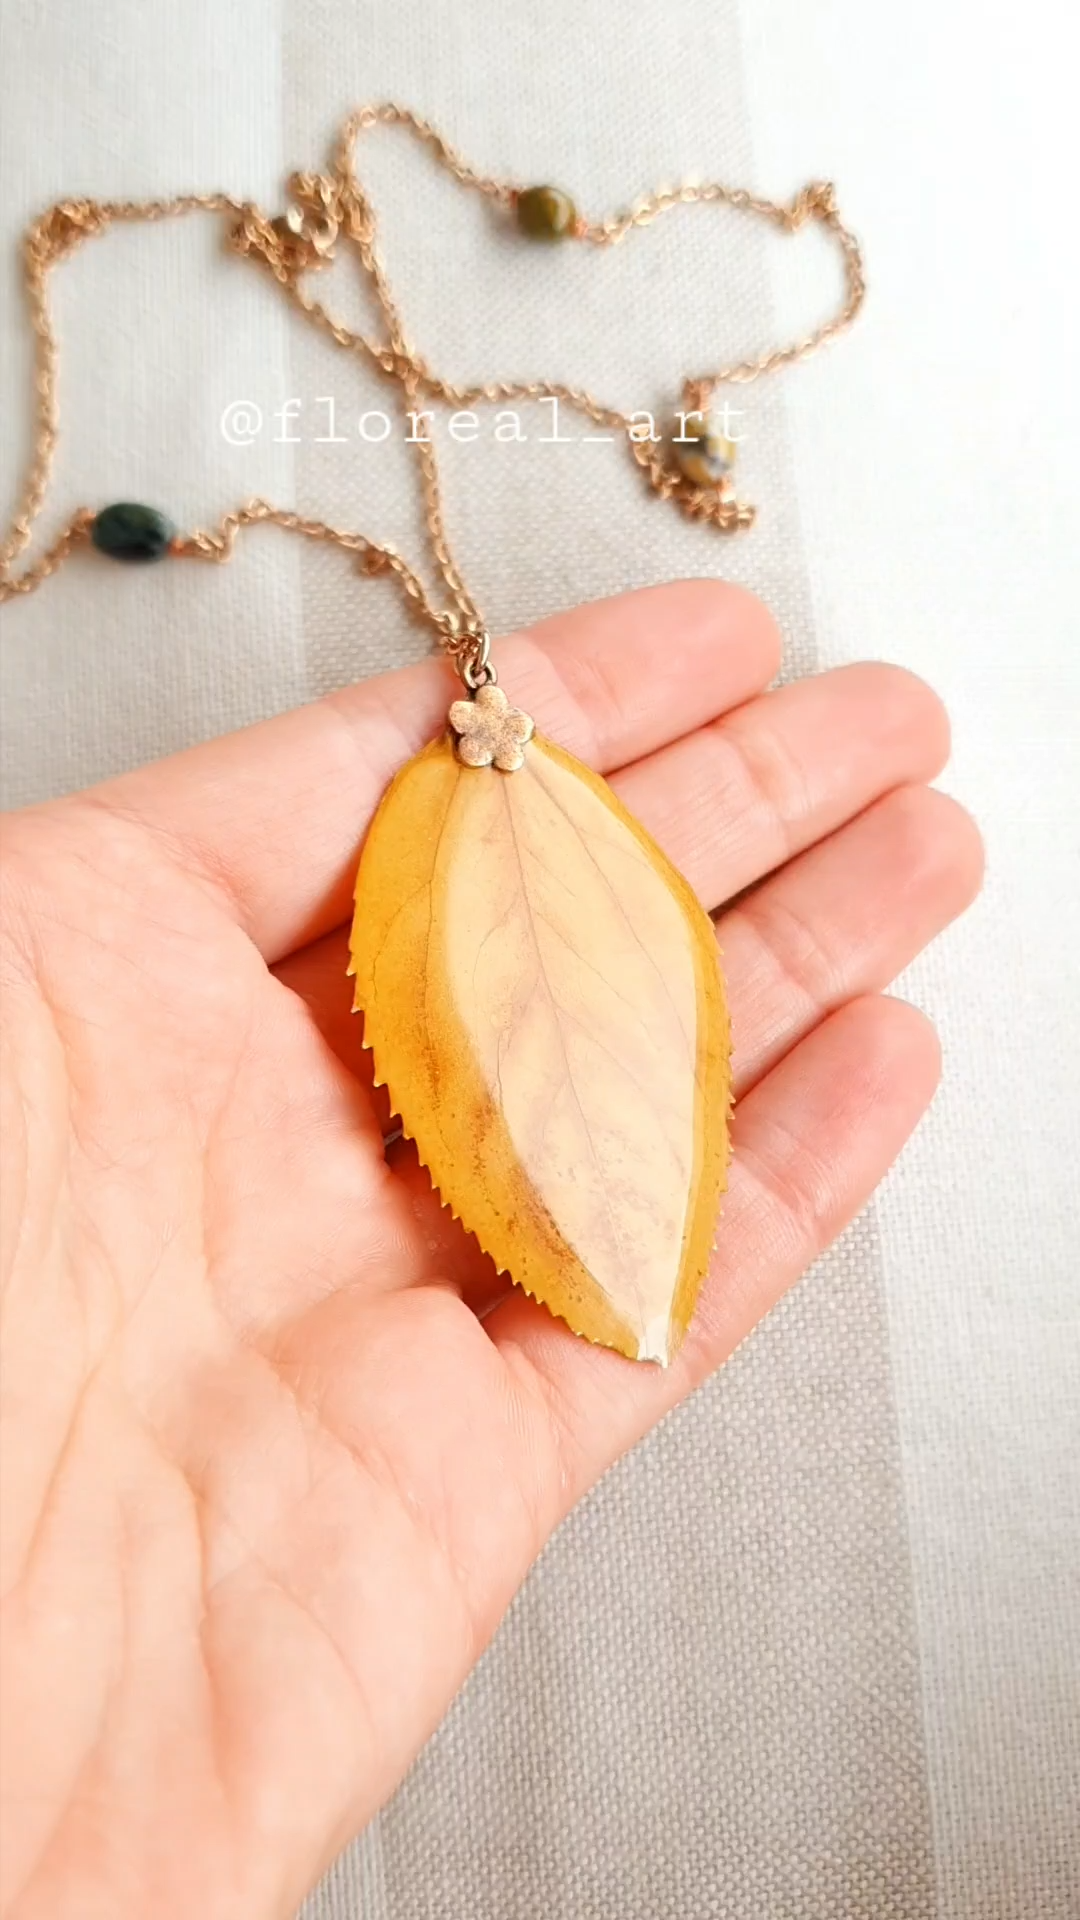 Photo of Pressed Leaf Necklace,Ocean Jasper Necklace,Resin Necklace,Handmade Necklace,Stainless Steel